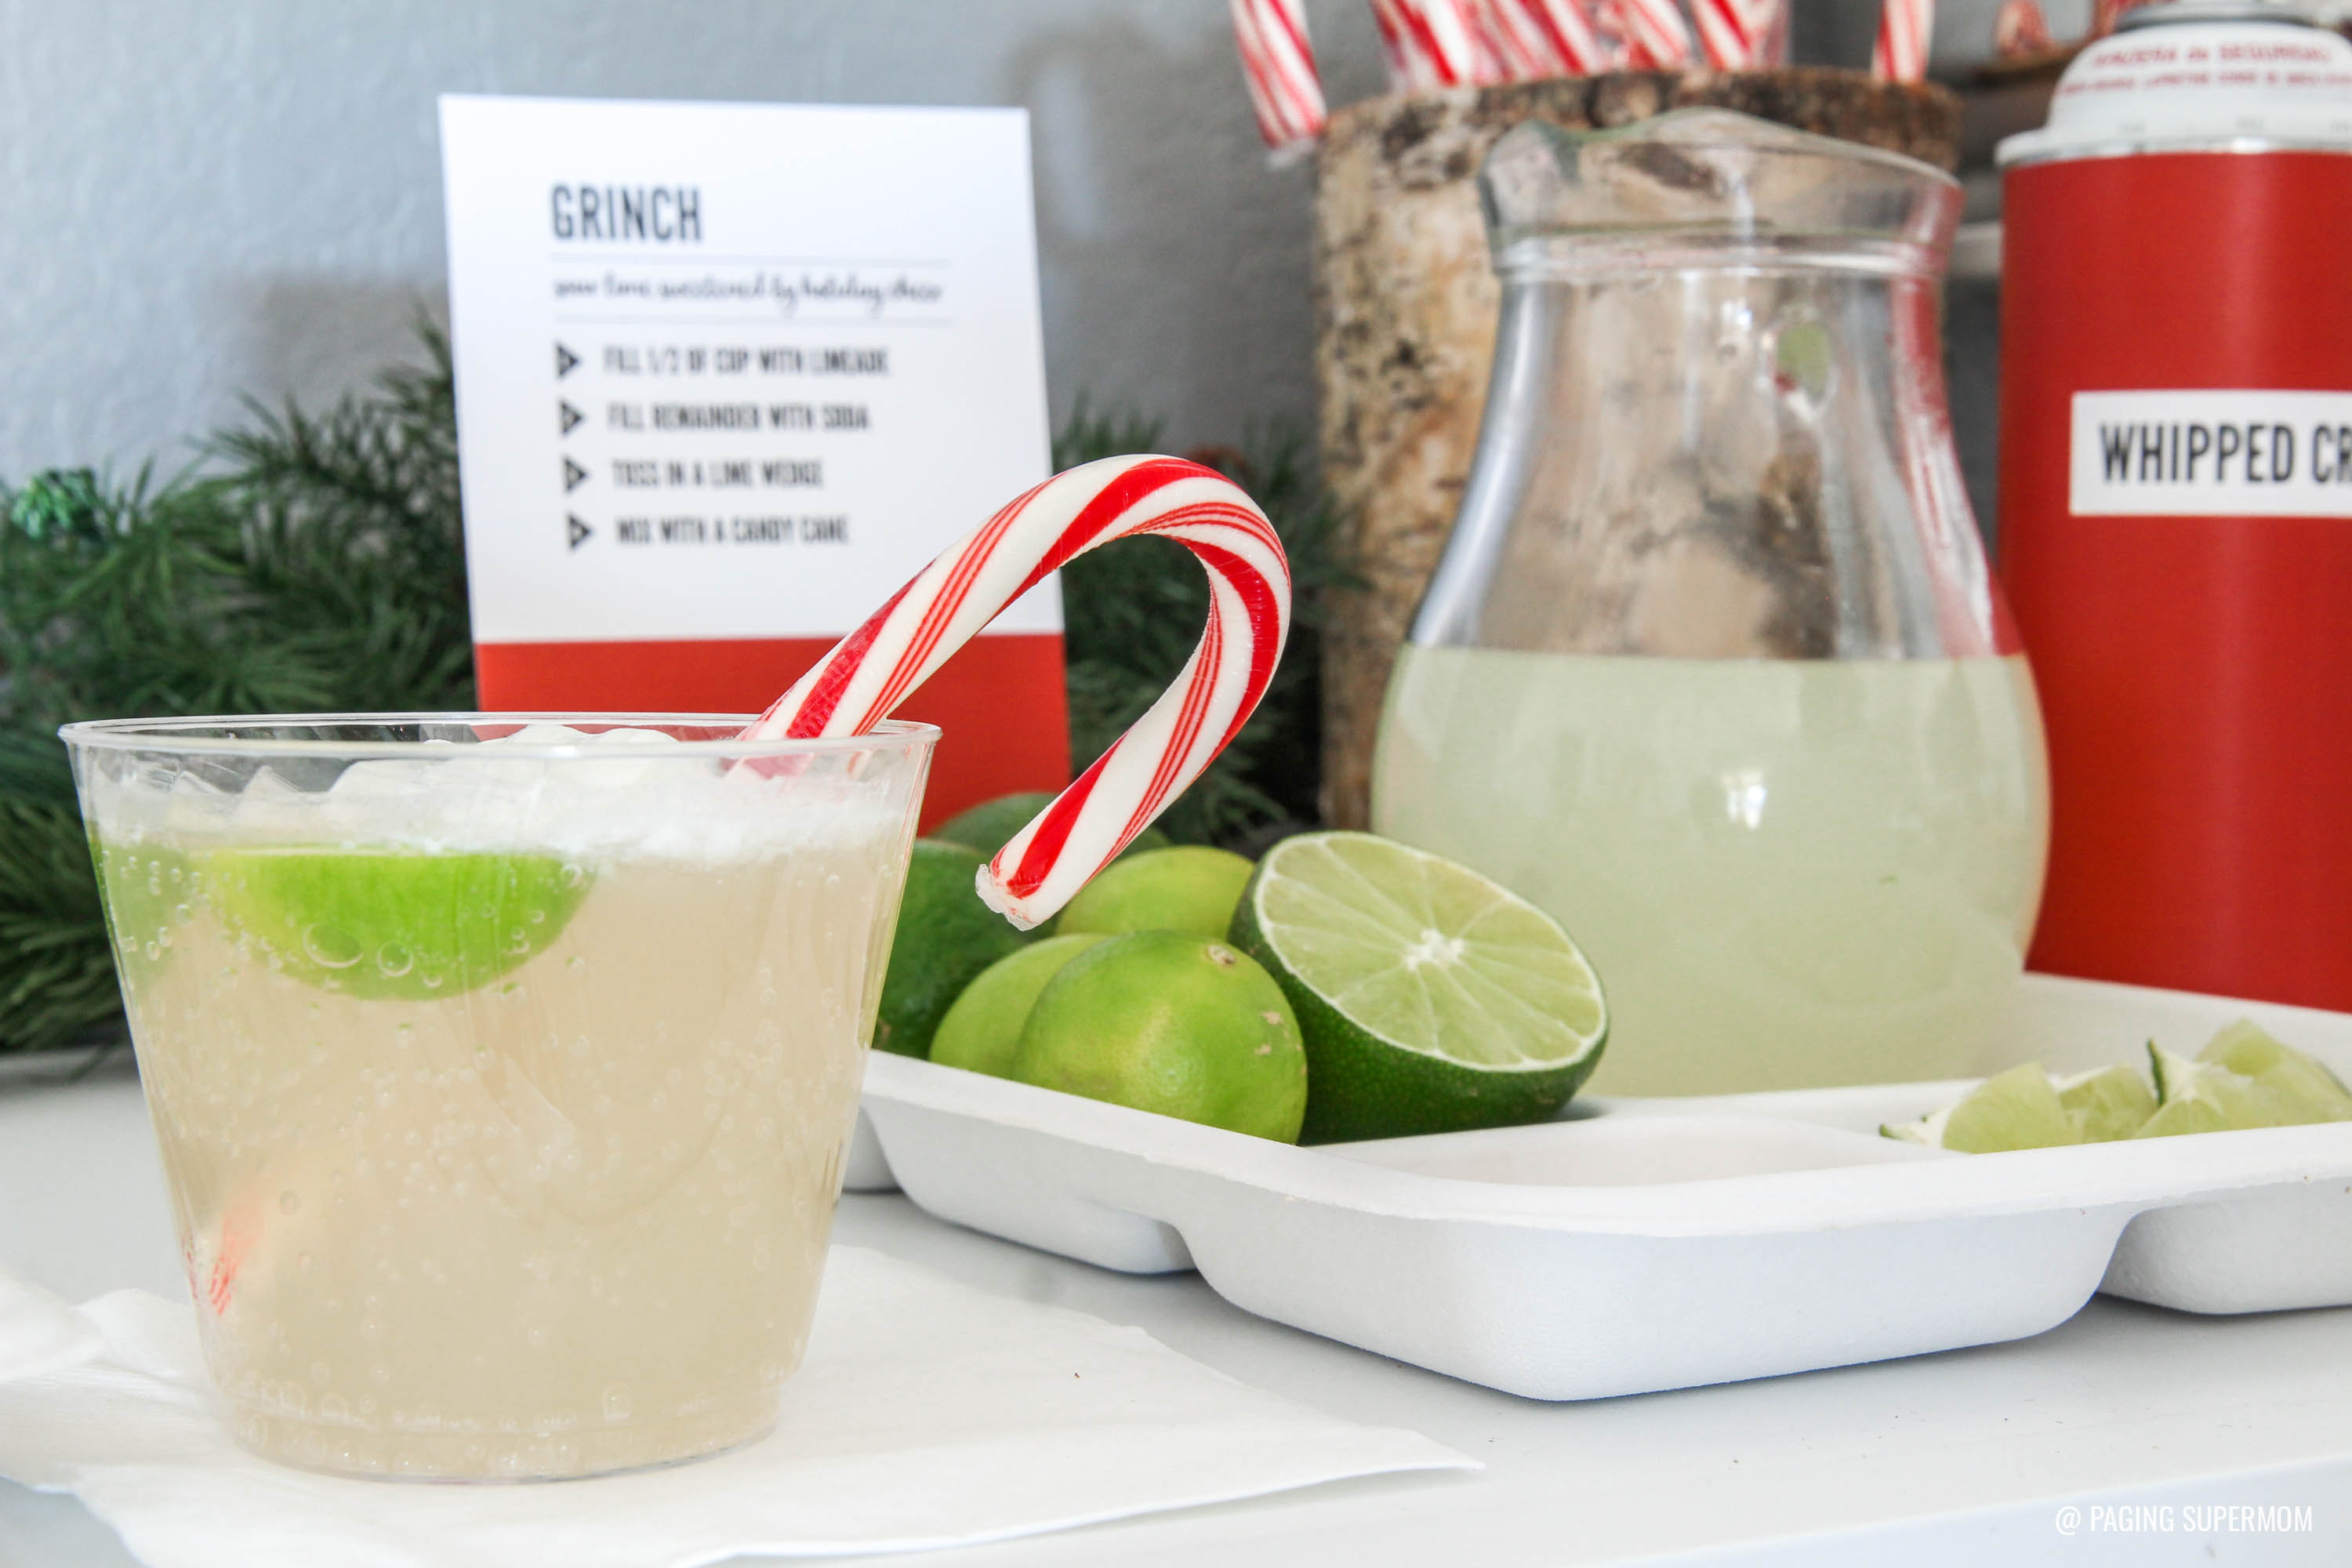 The GRINCH - Christmas Cocktails Recipe ideas with FREE Christmas Cocktails Station printable kit via @PagingSupermom